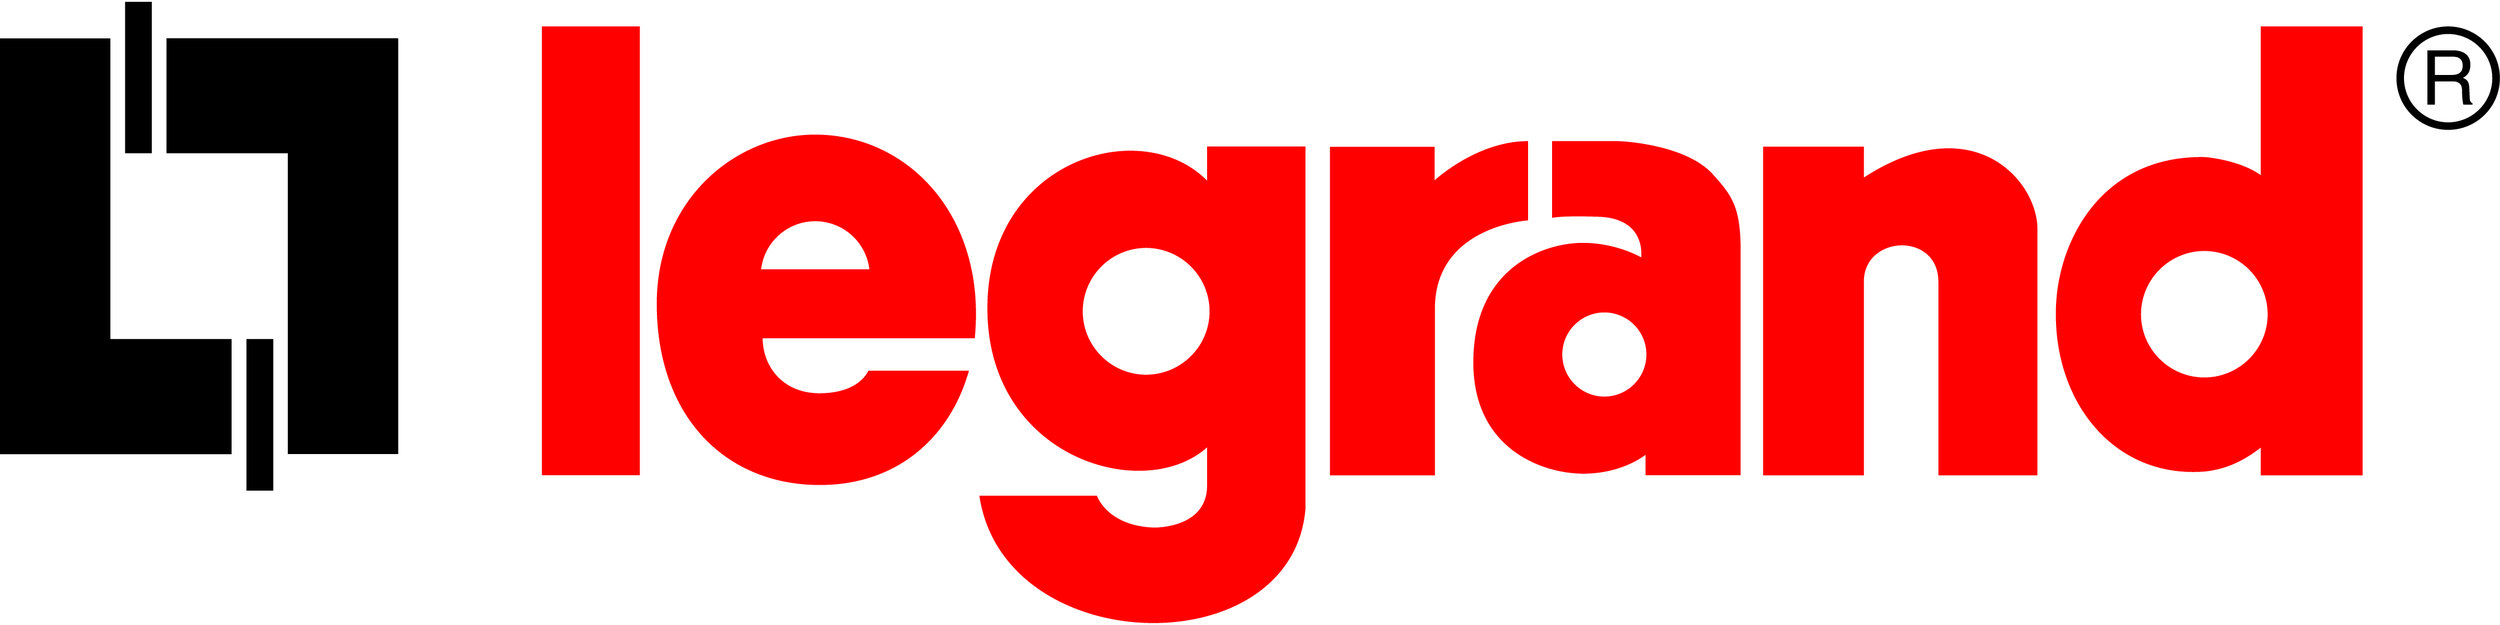 Legrand-Red-JPG.jpg